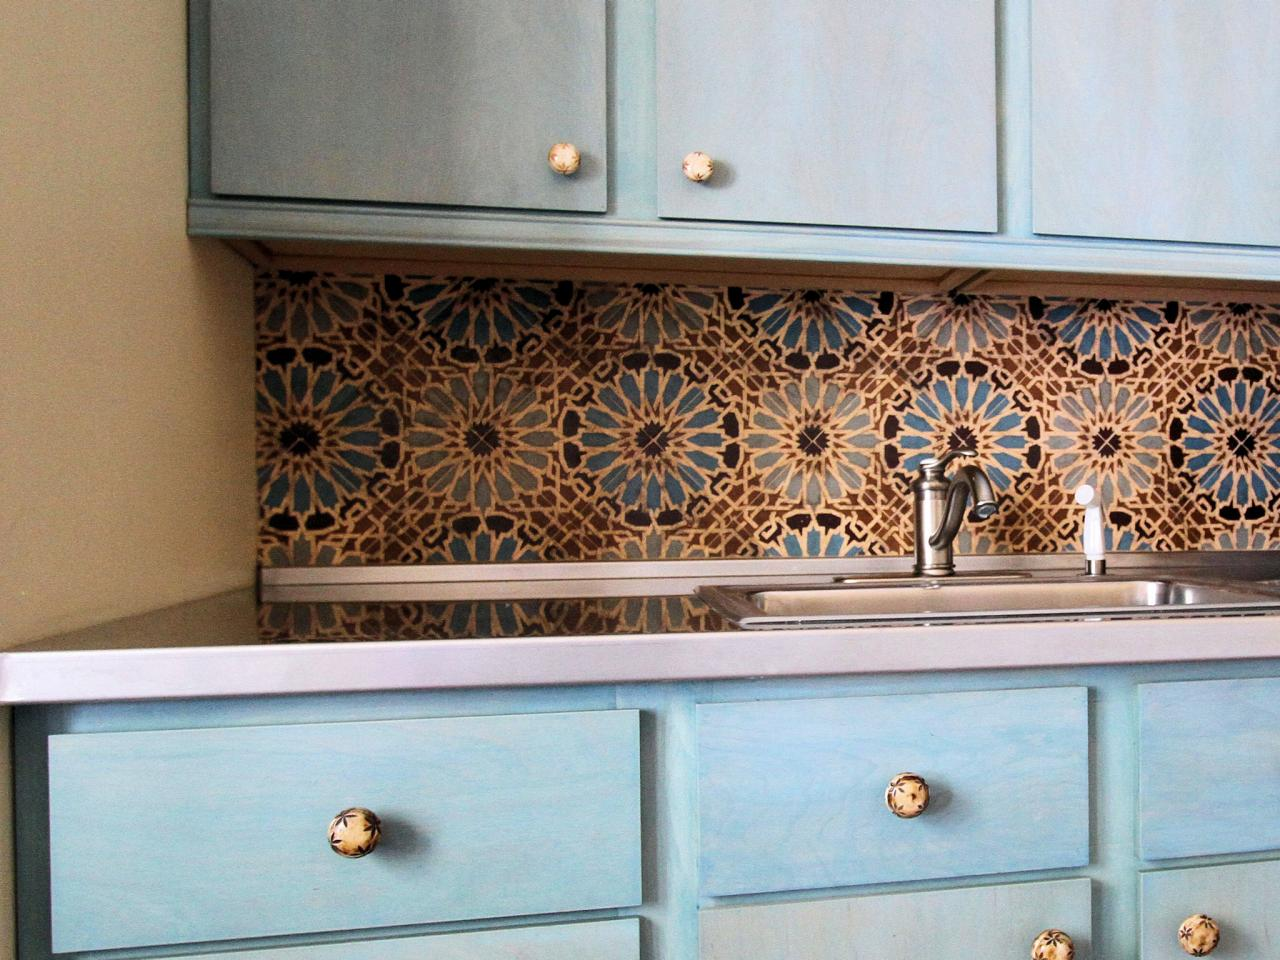 Kitchen tile backsplash ideas pictures tips from hgtv How to put tile on wall in the kitchen